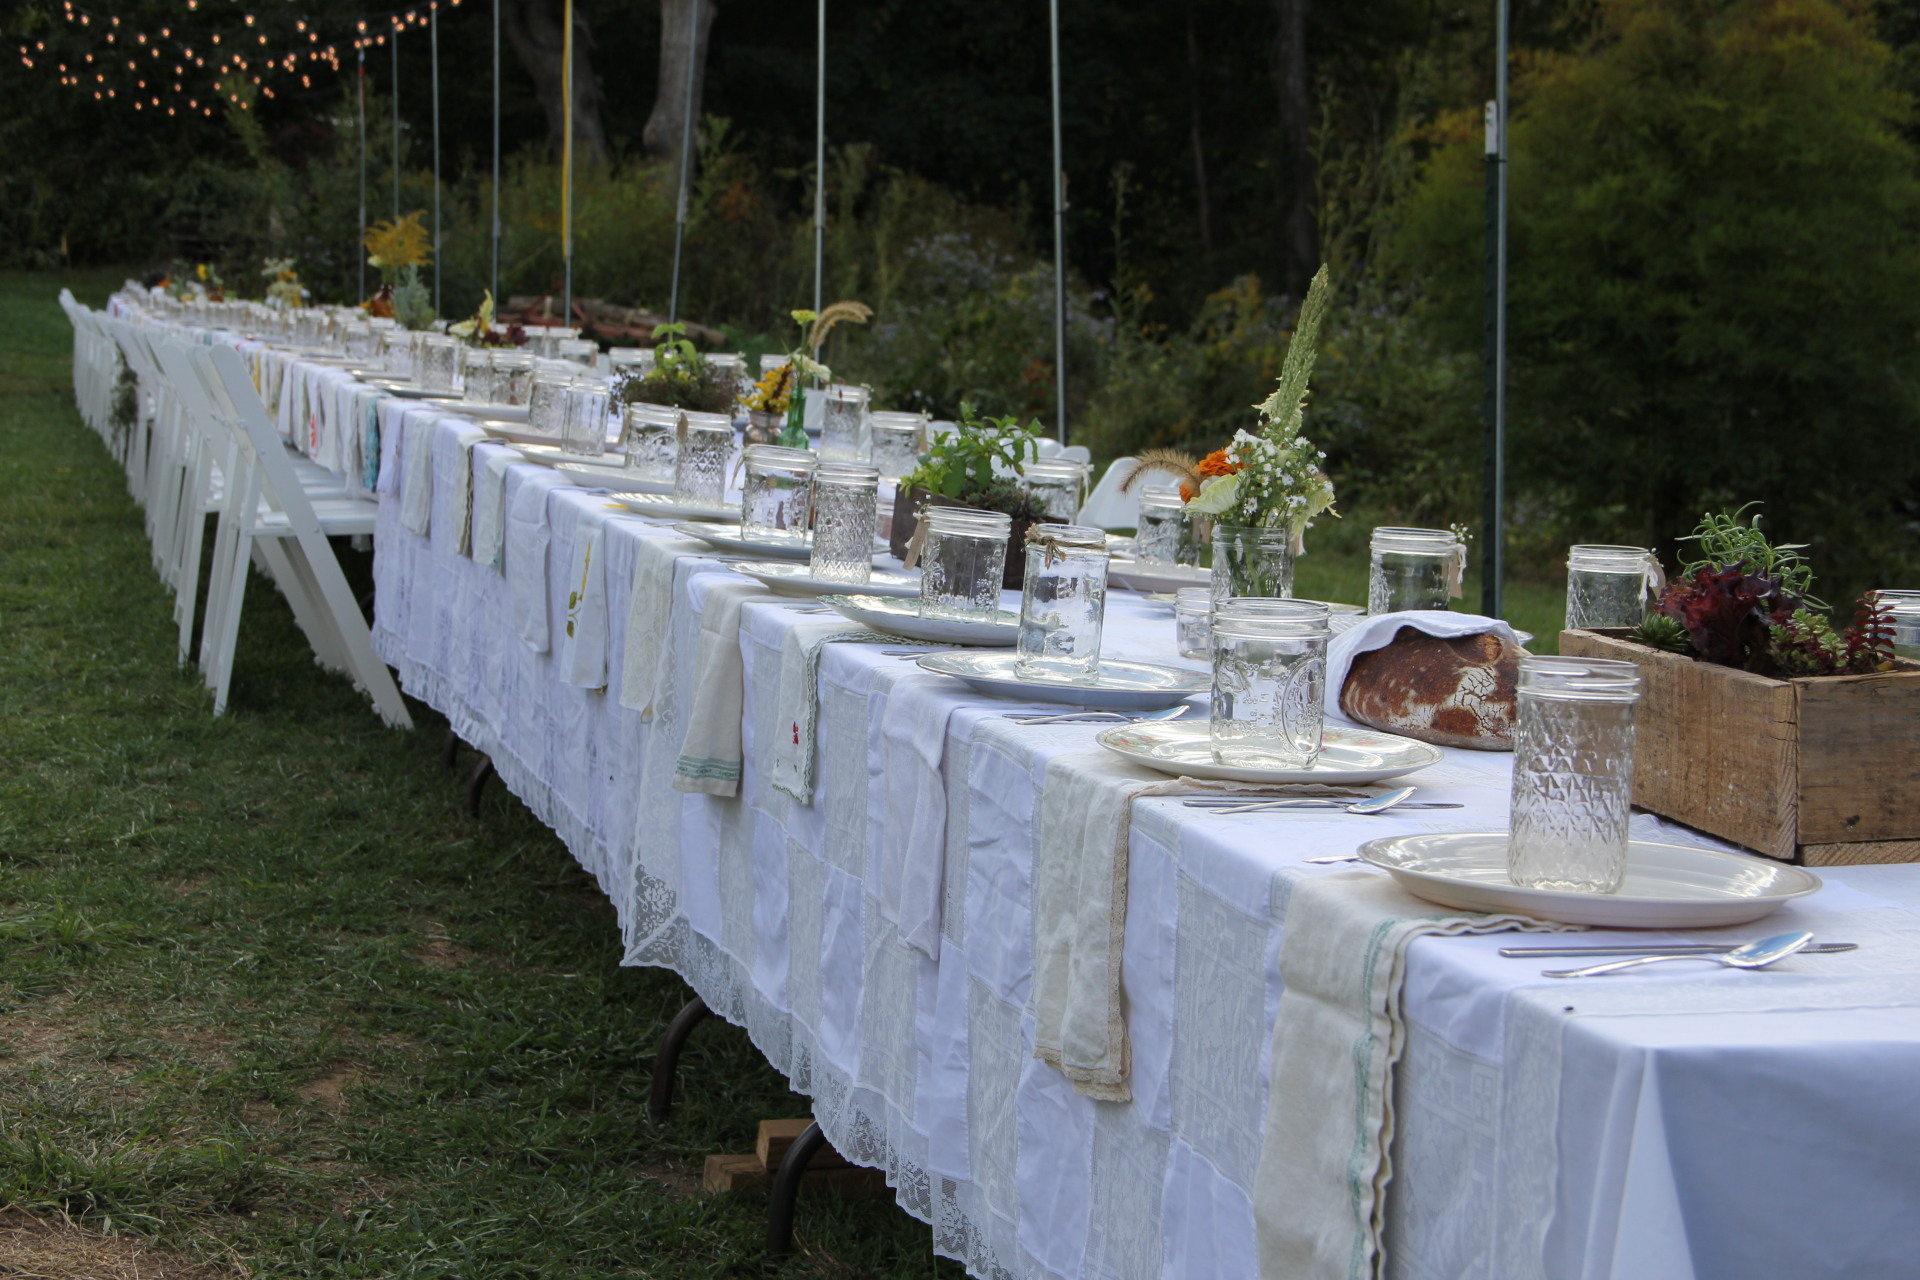 Bride and Groom, Pam and Roger created a memorable table arrangement